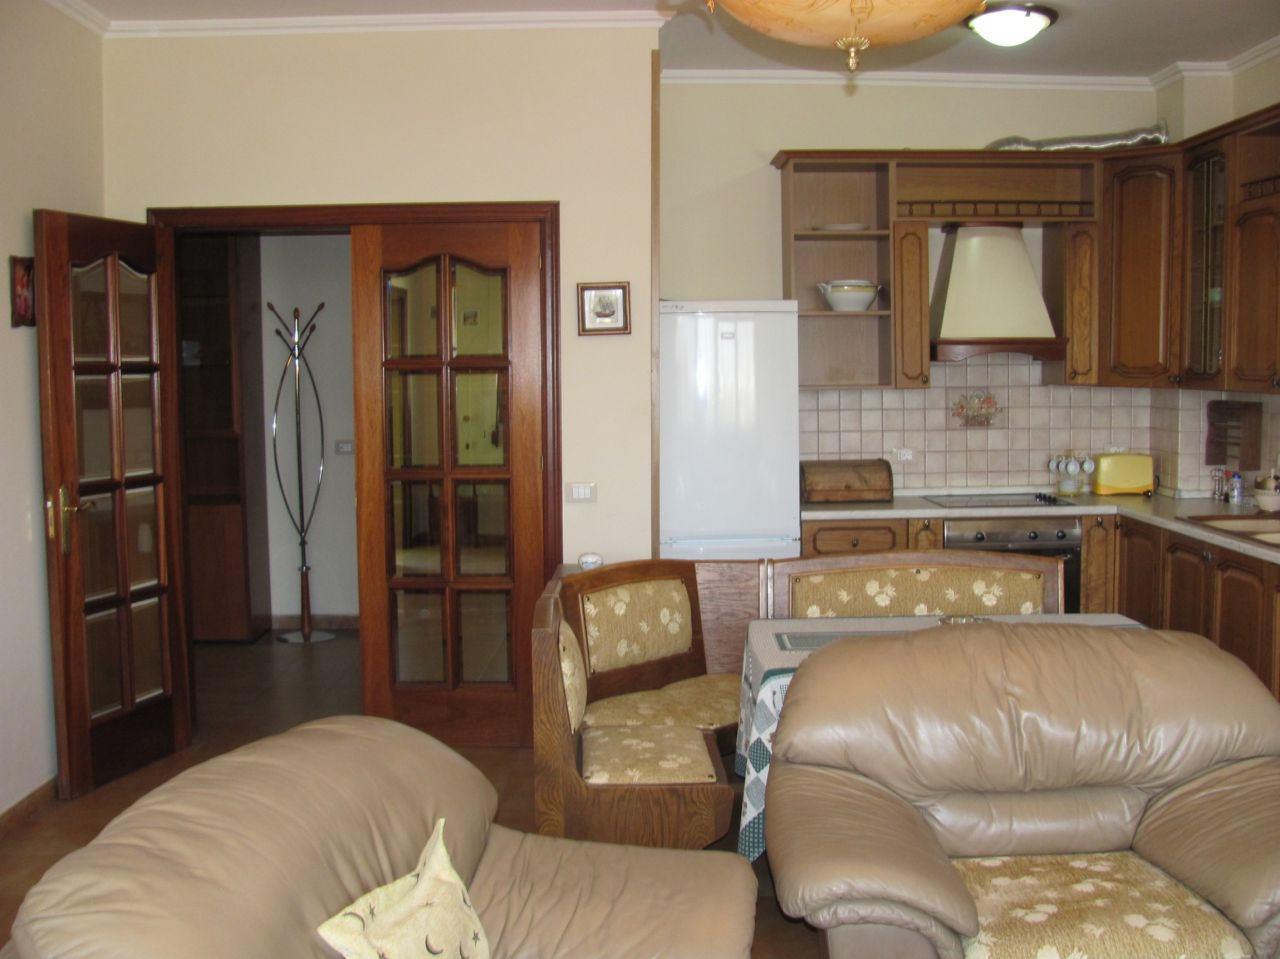 Nicely located apartment for rent in the capital of Albania, Tirana.